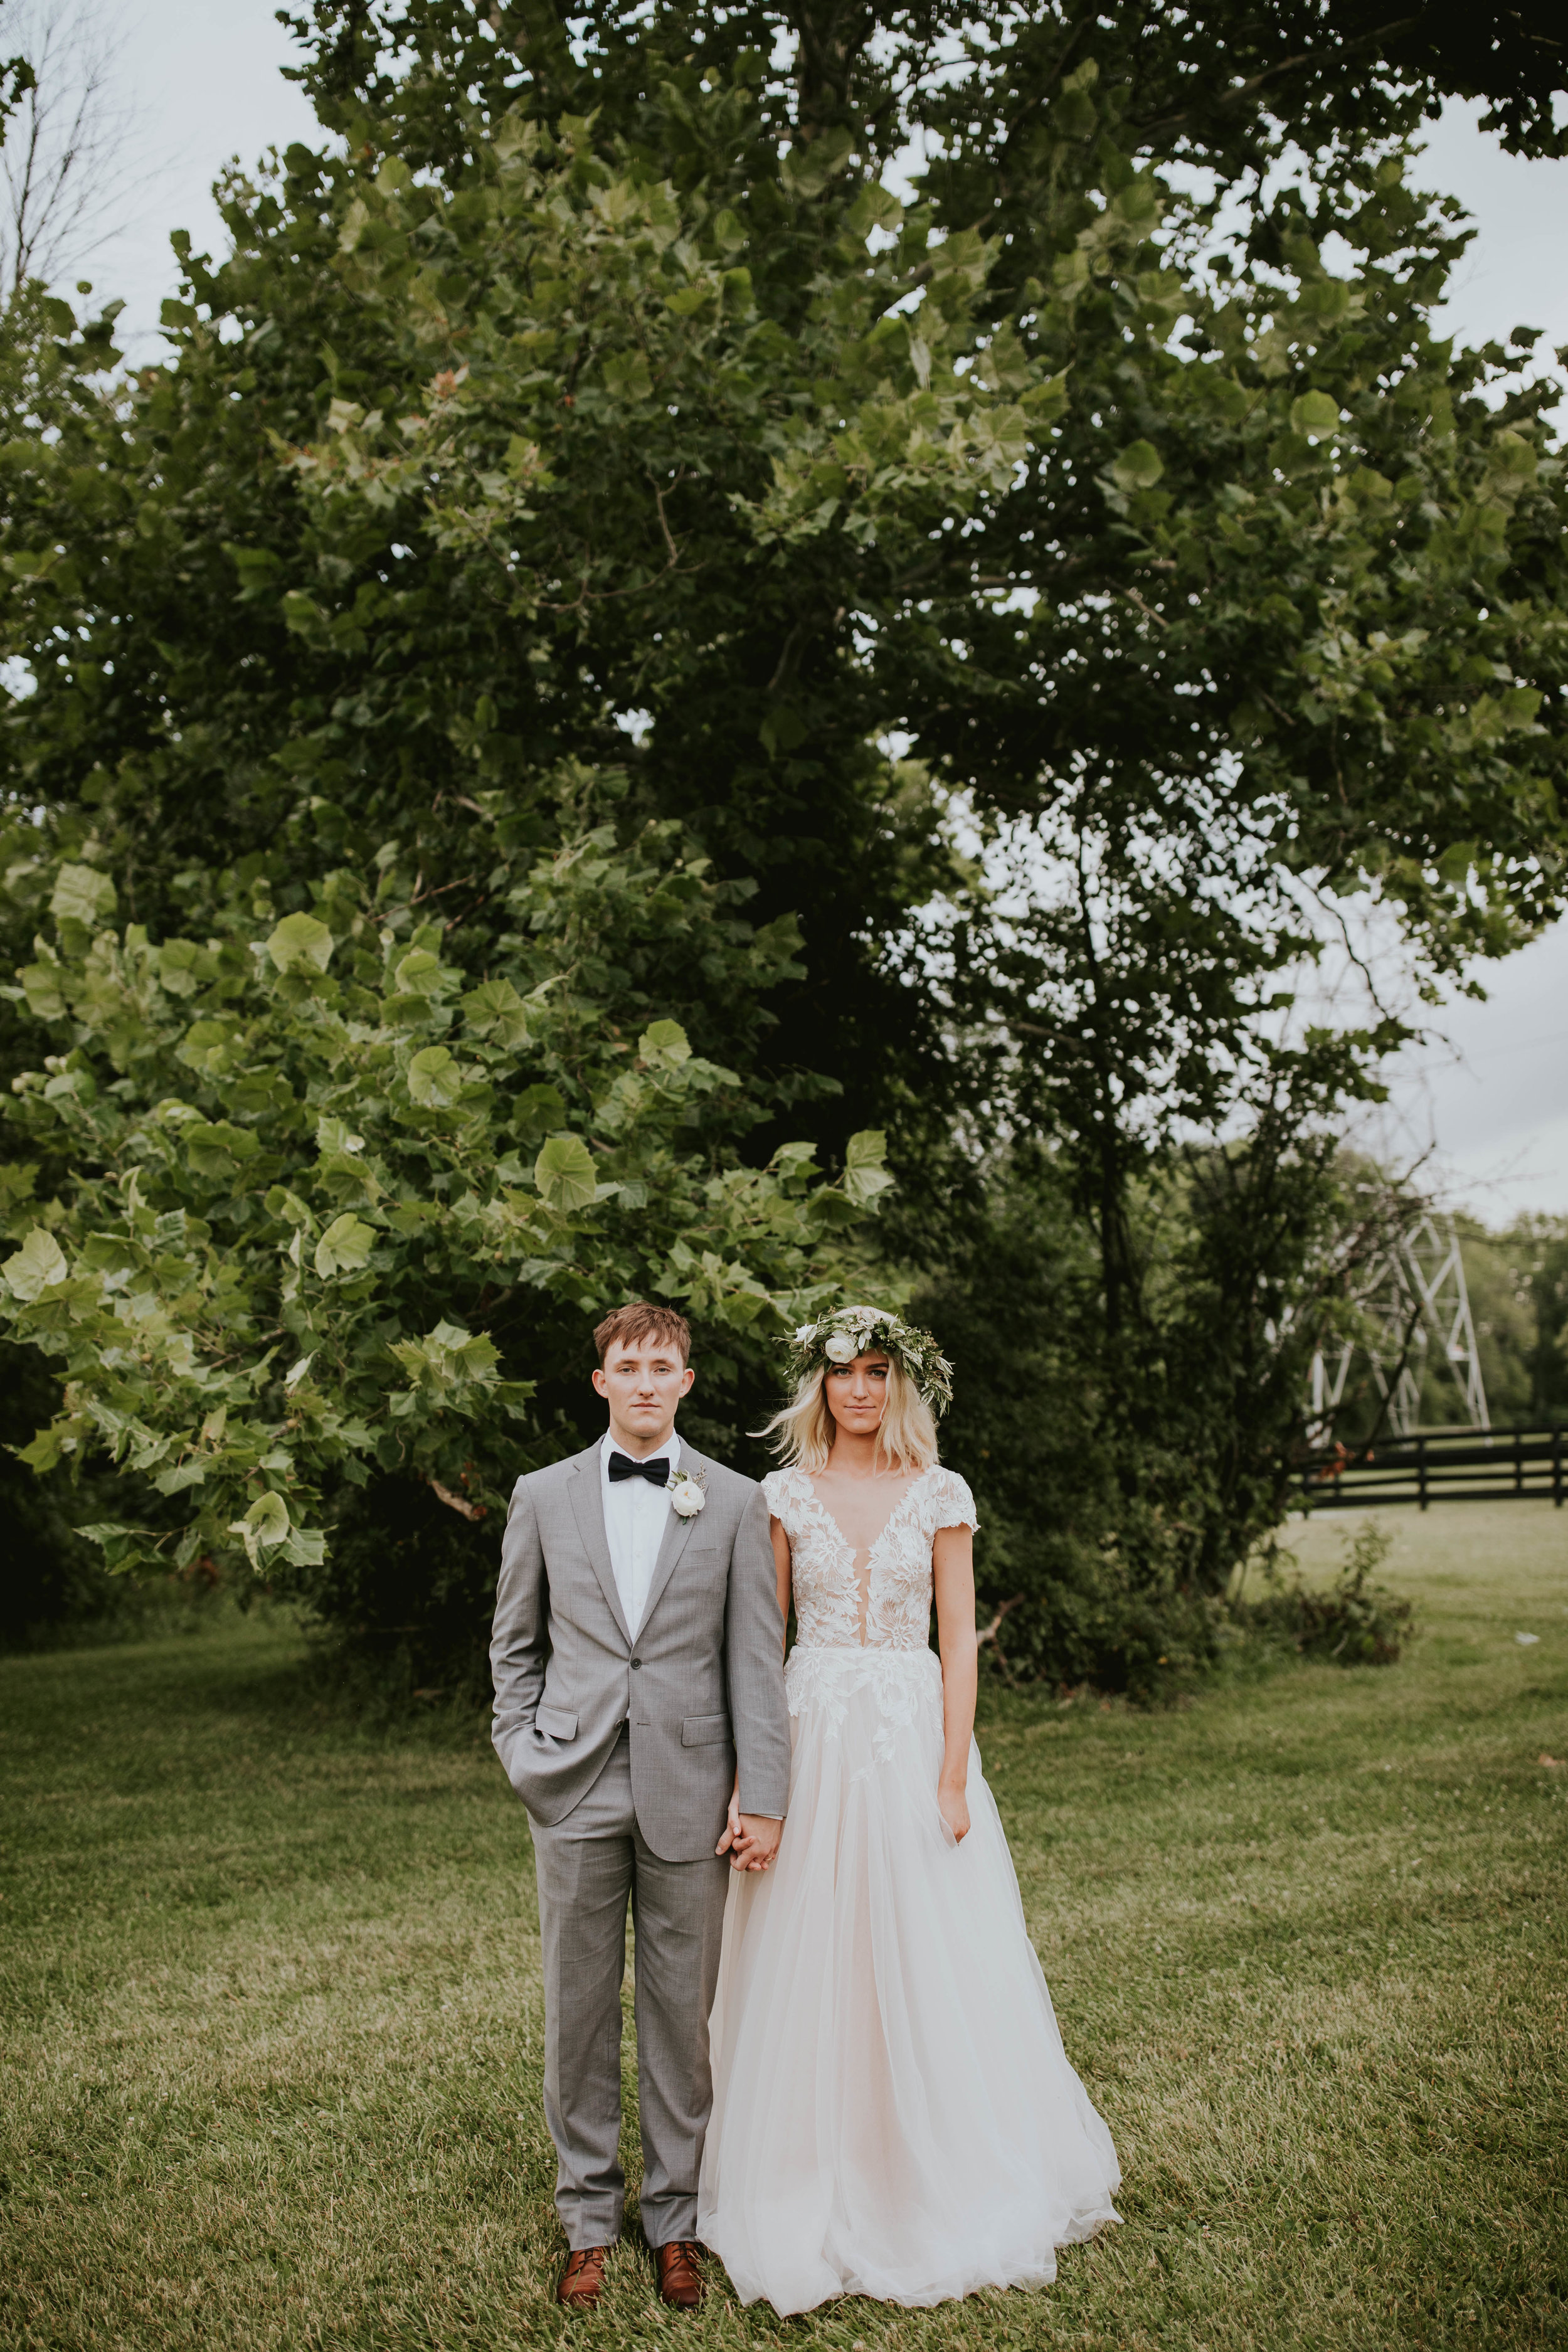 LaurenLandon-Wedding-2018-21387.jpg